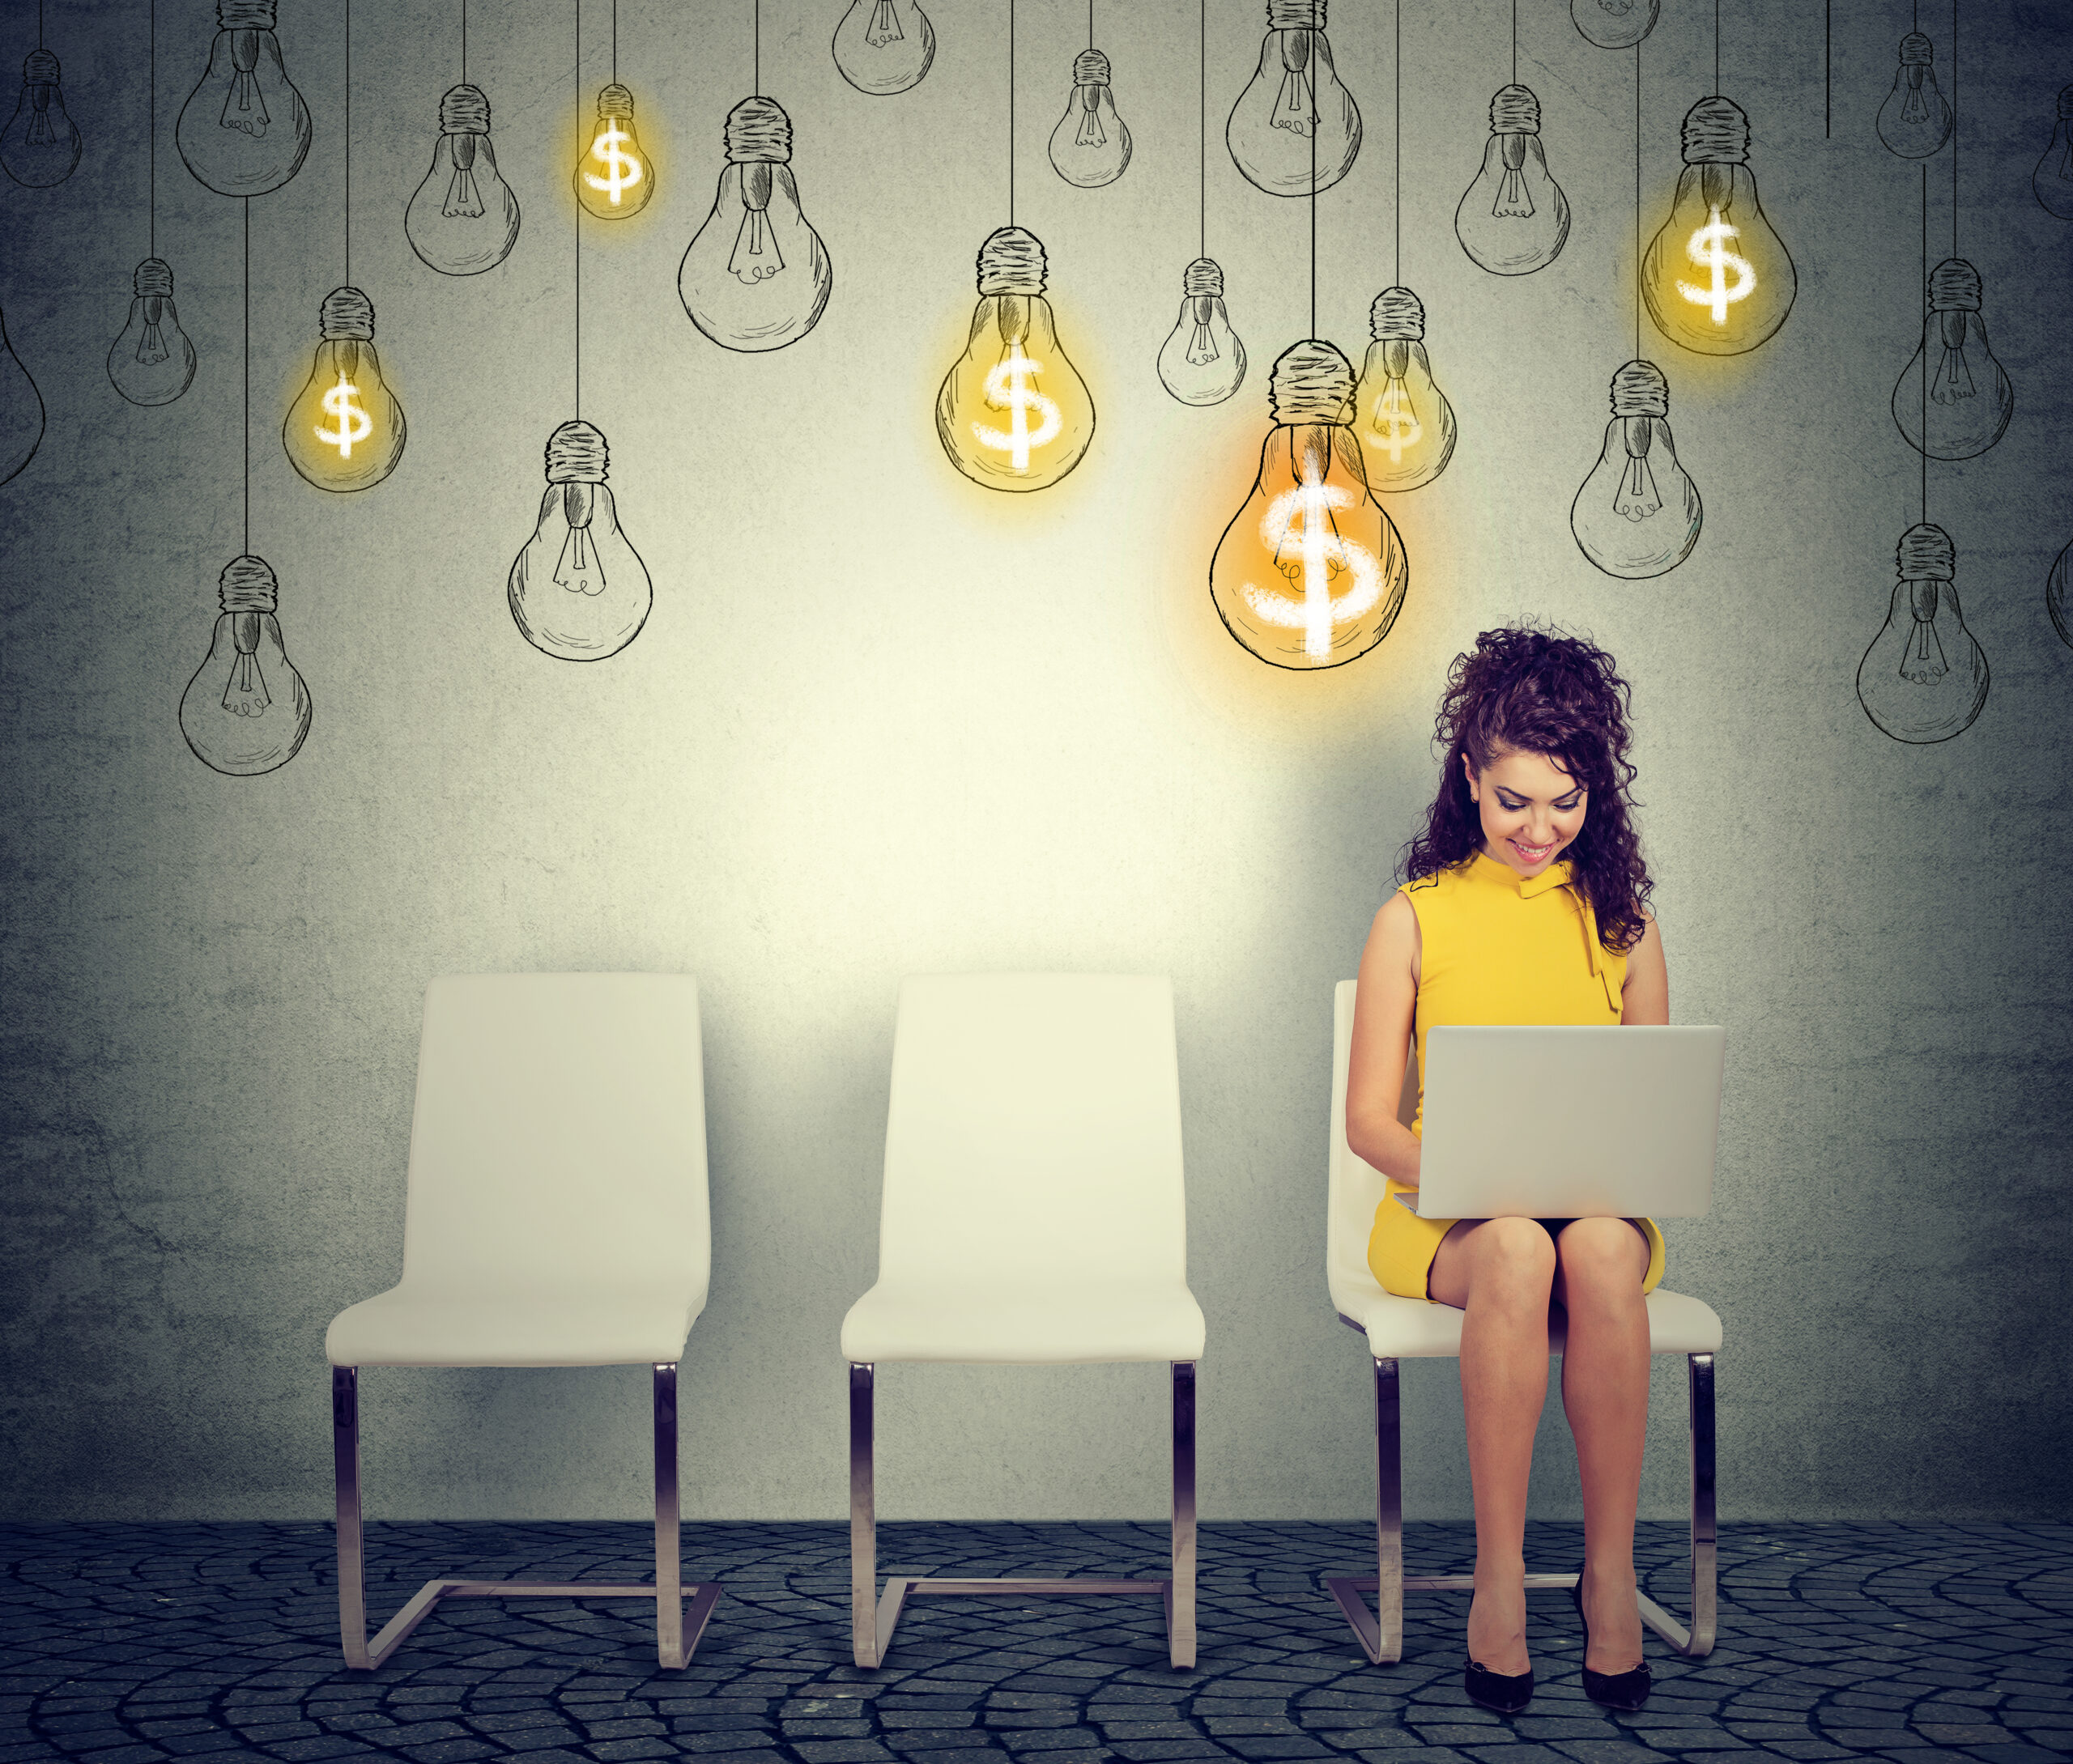 Woman calculating electric bill costs